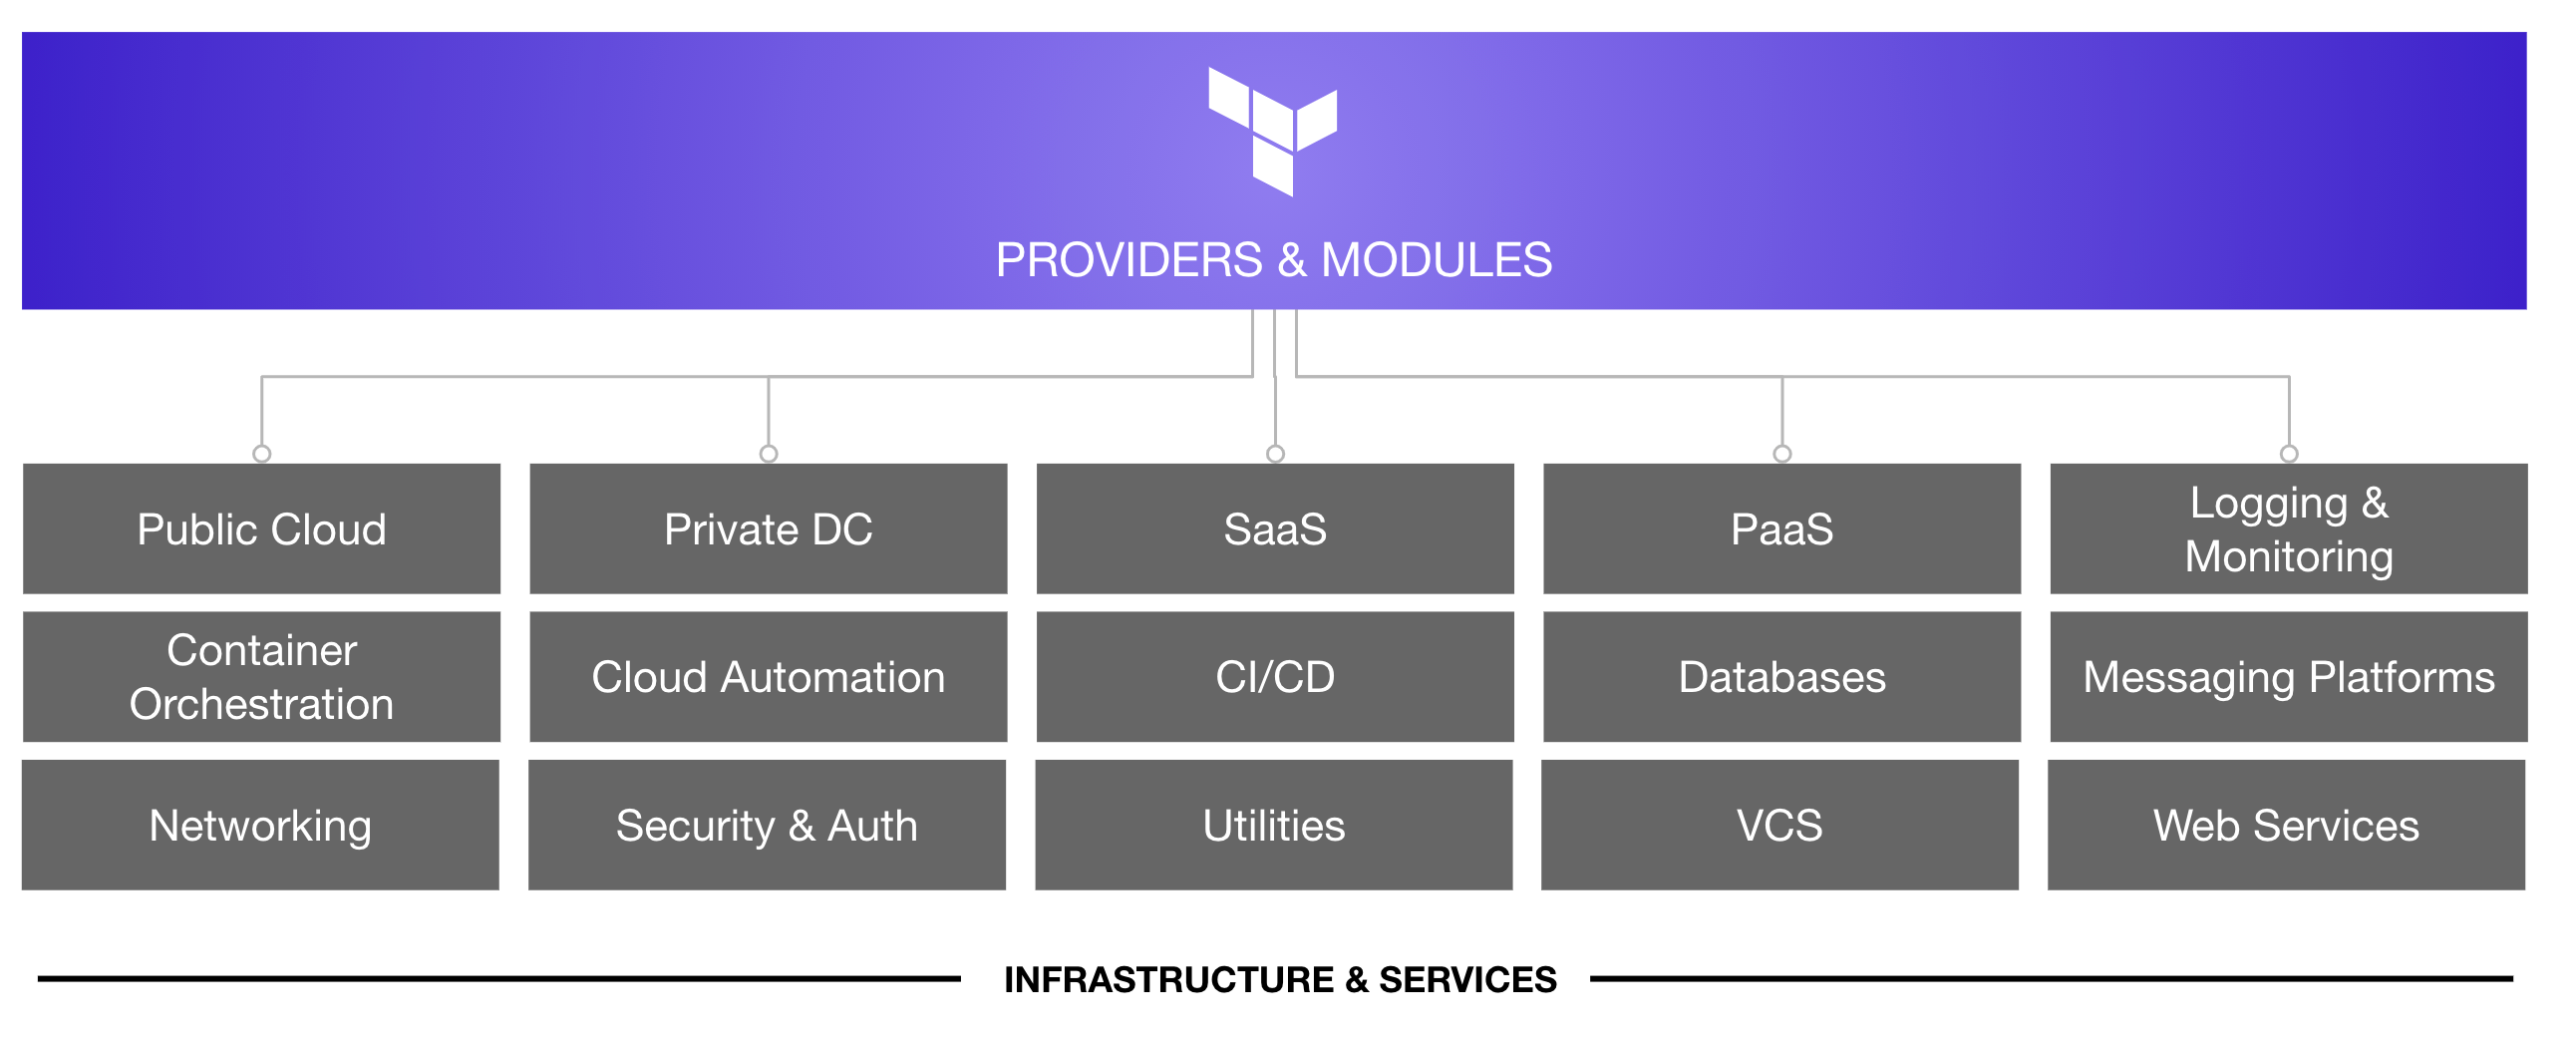 Terraform provider and module categories